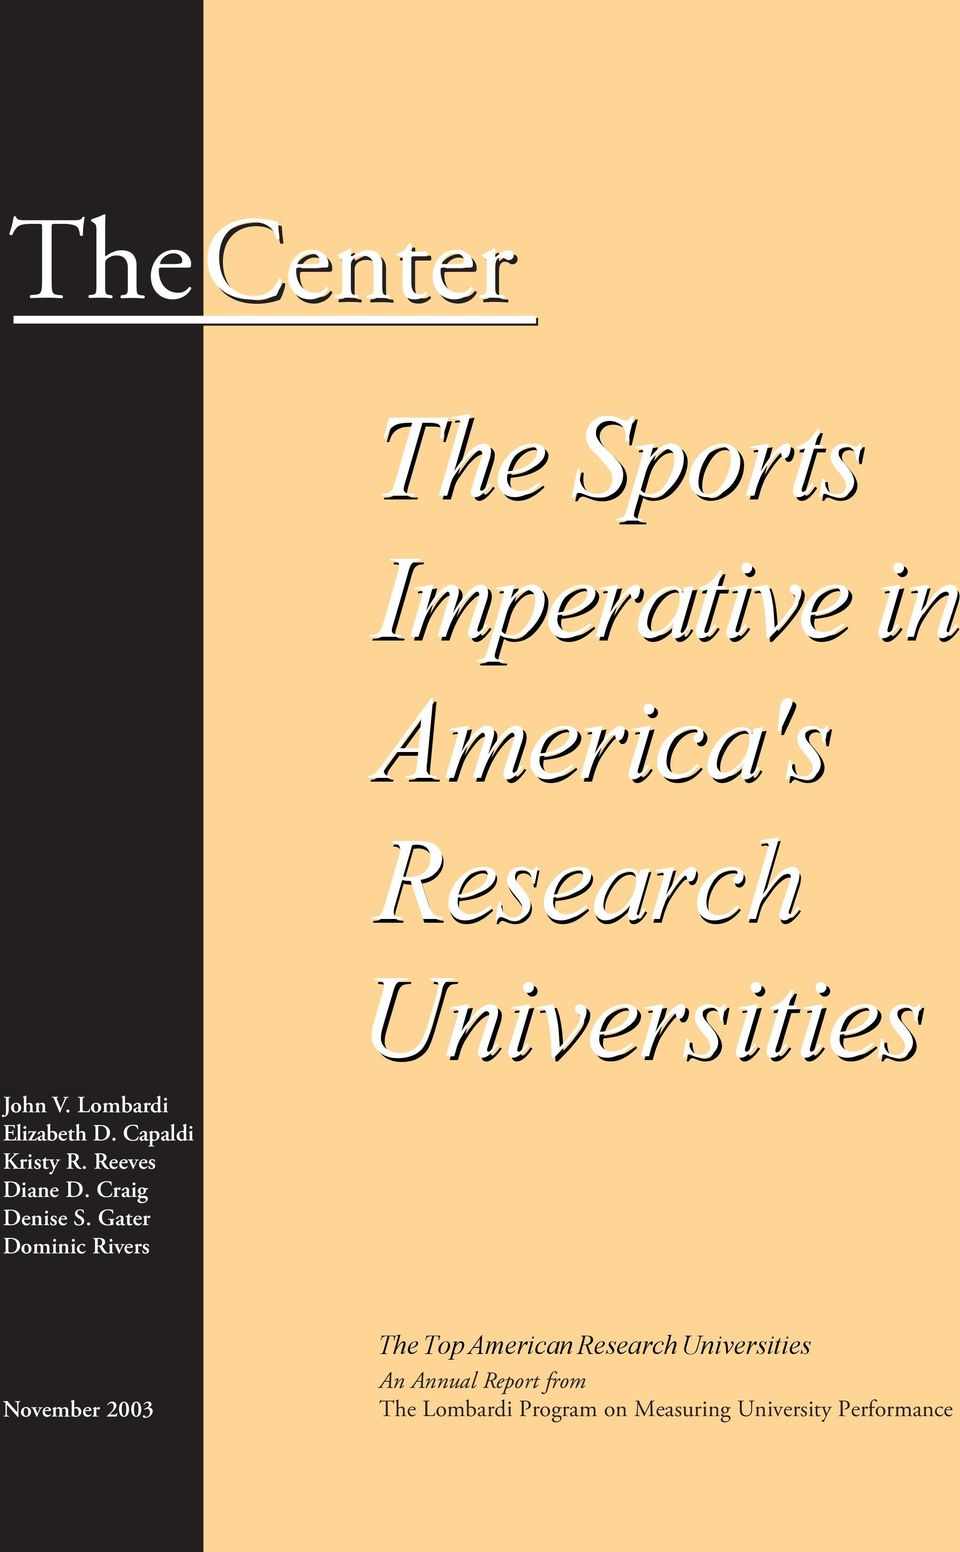 Gater Dominic Rivers The Sports Imperative in America's Research